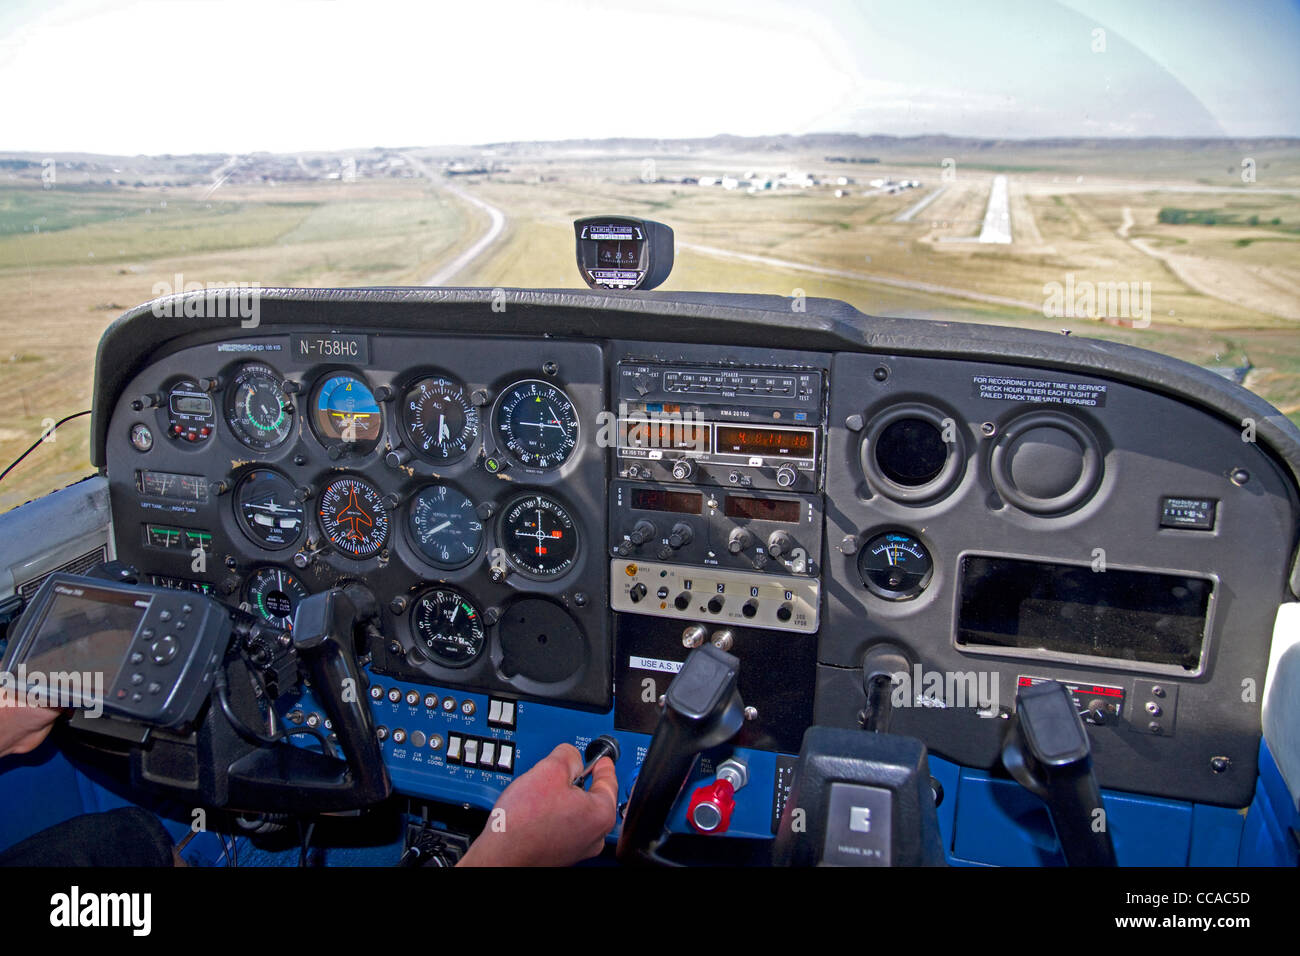 Airstrip landing view from the cockpit of a cessna 172. - Stock Image